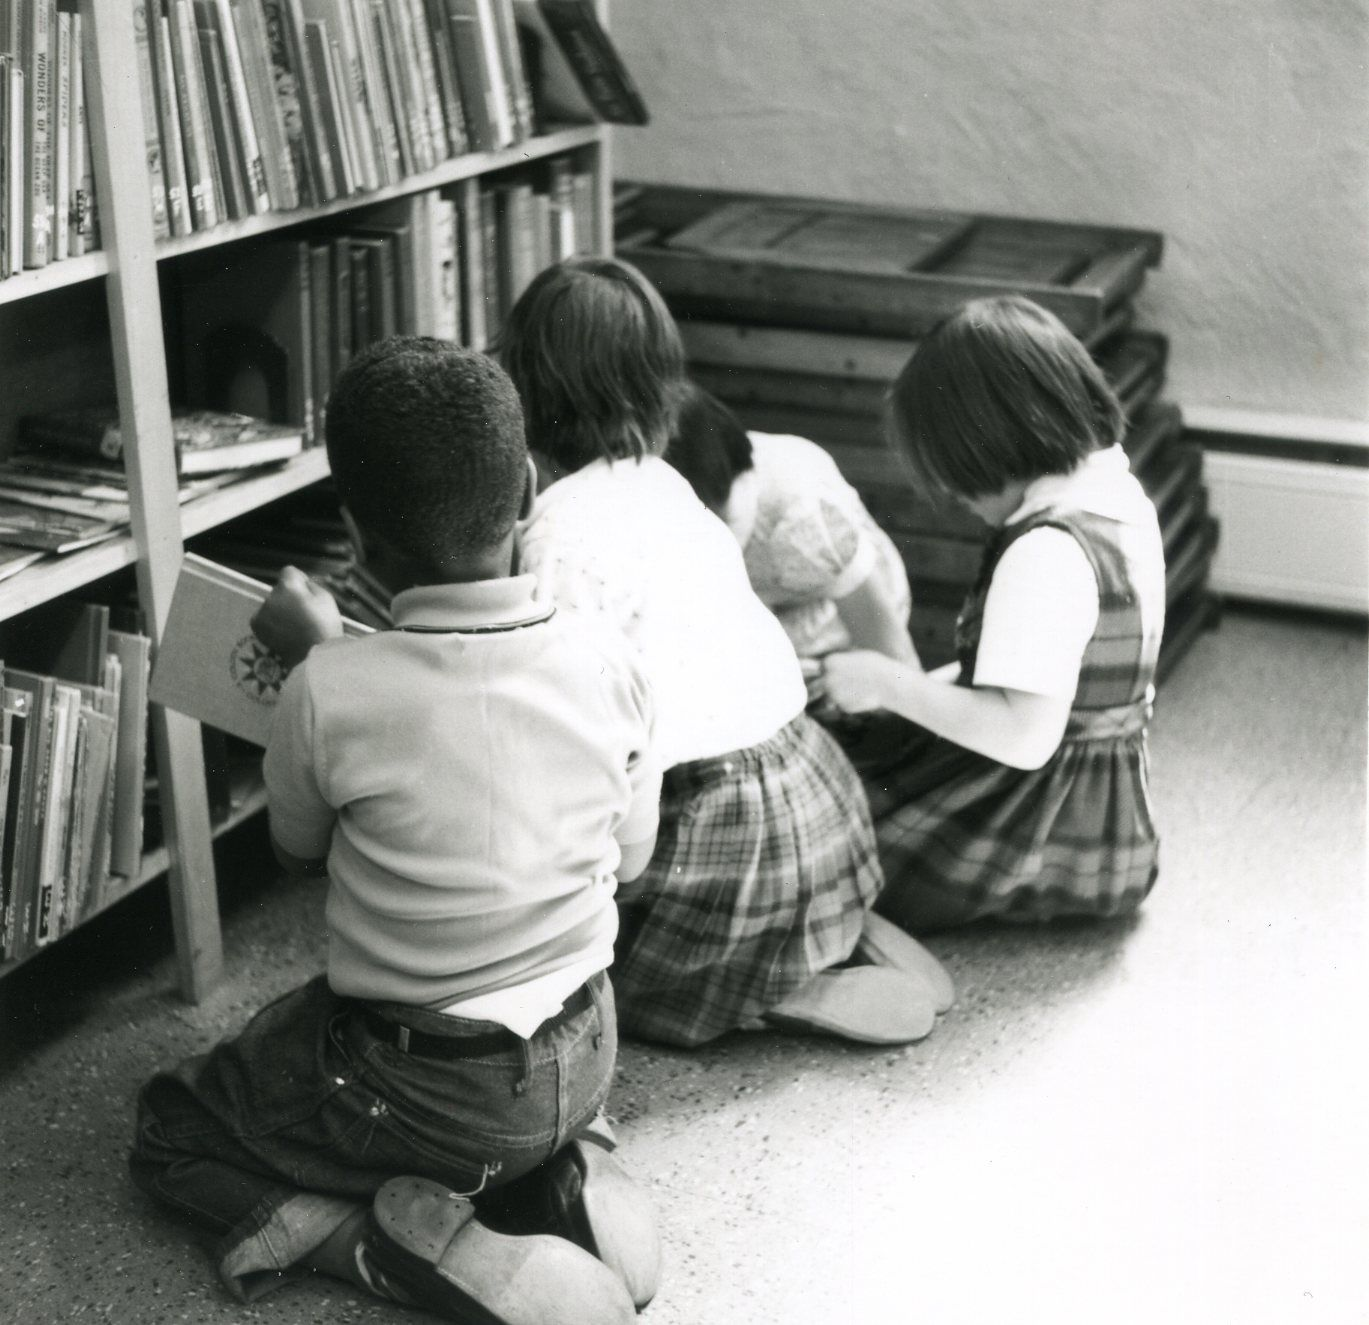 1960s Students in the Library